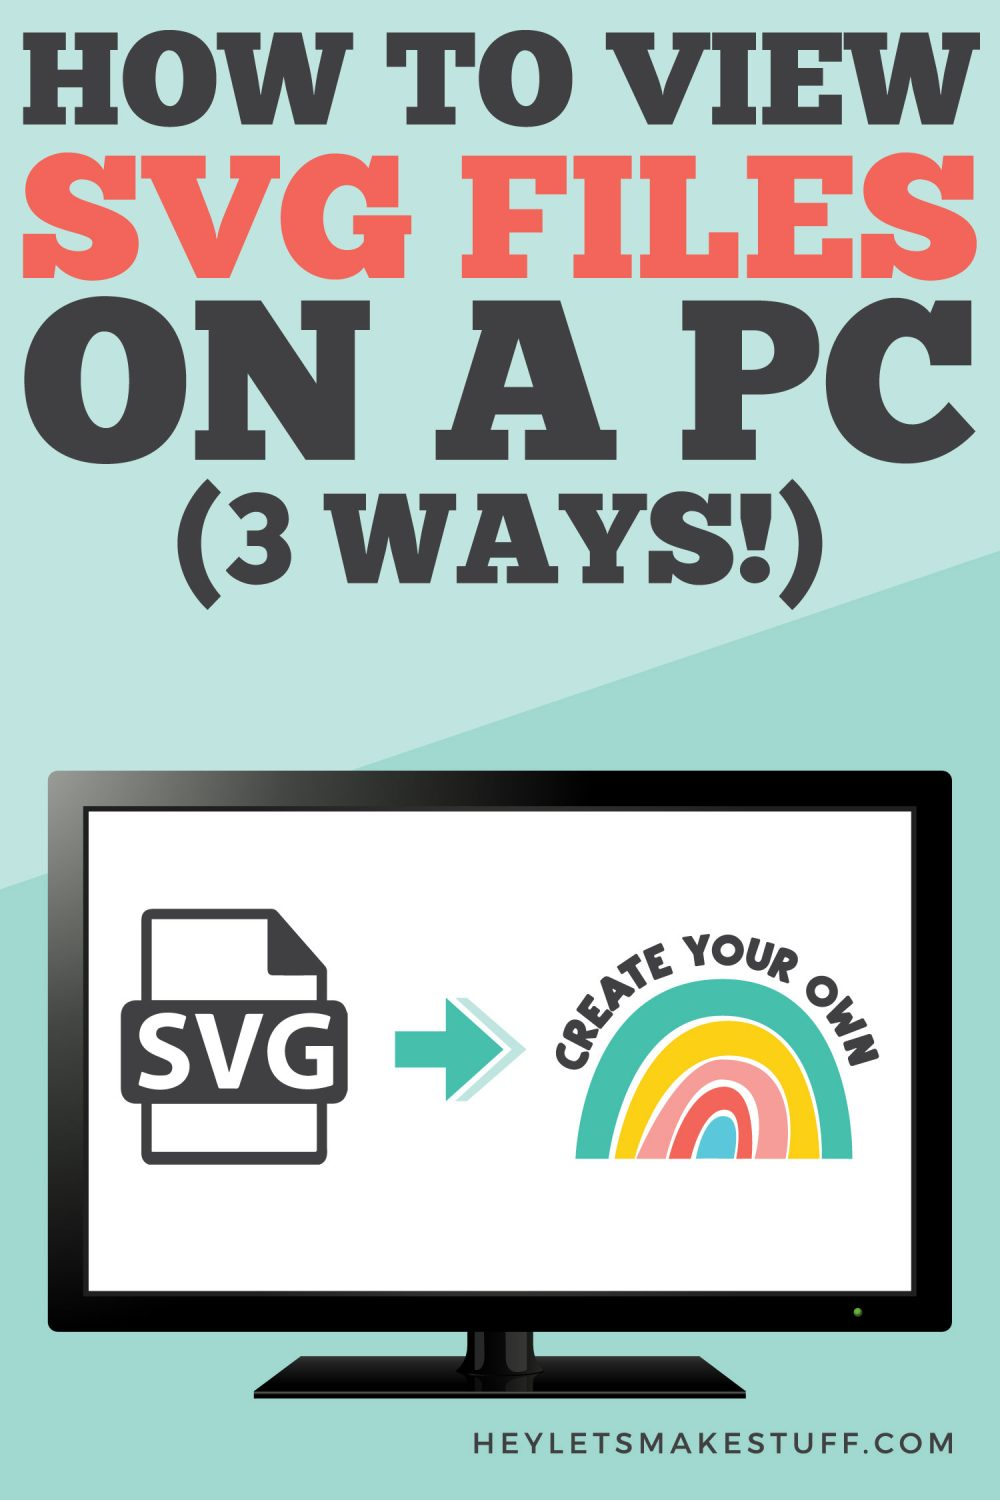 How to View SVG Files on a PC three ways pin image